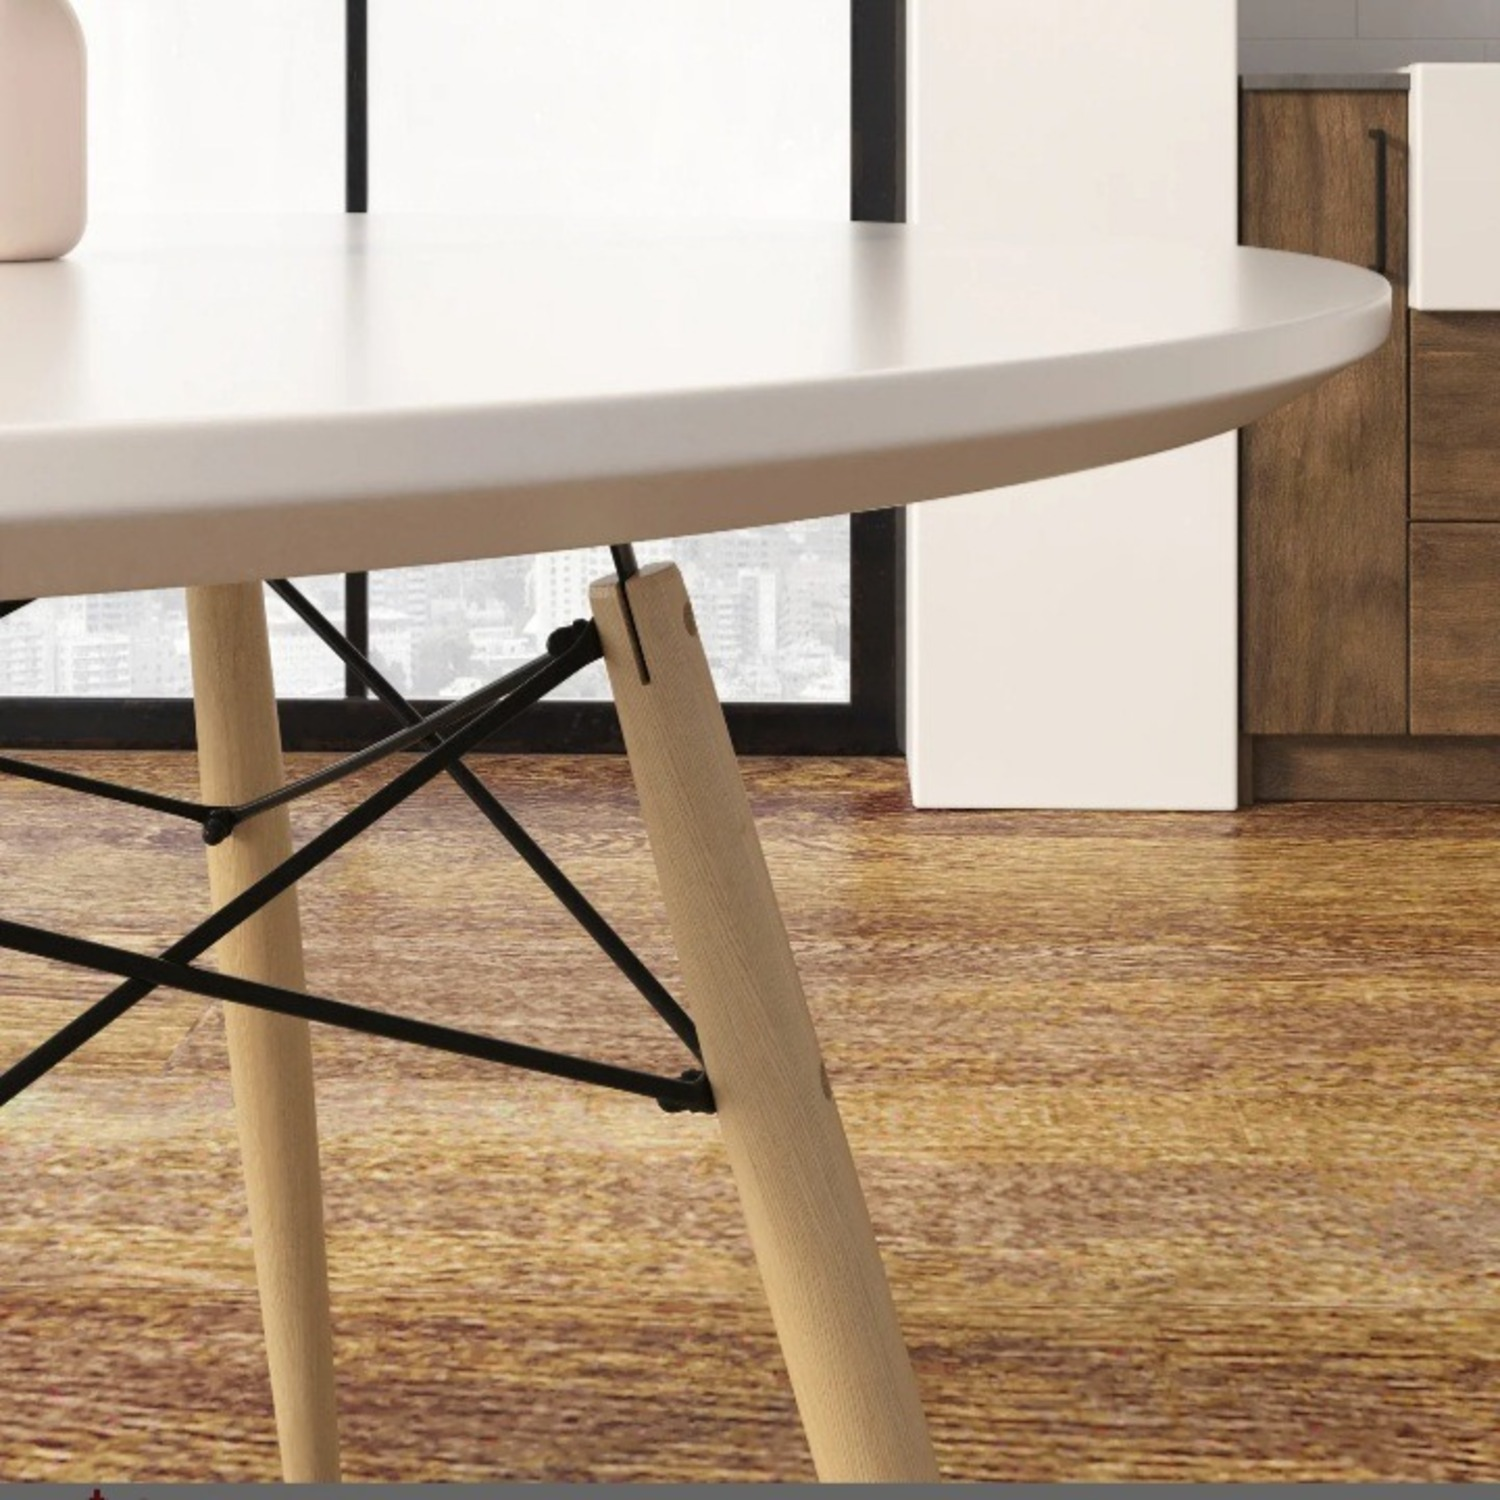 Wayfair Boardway Round Dining Room Table - image-2